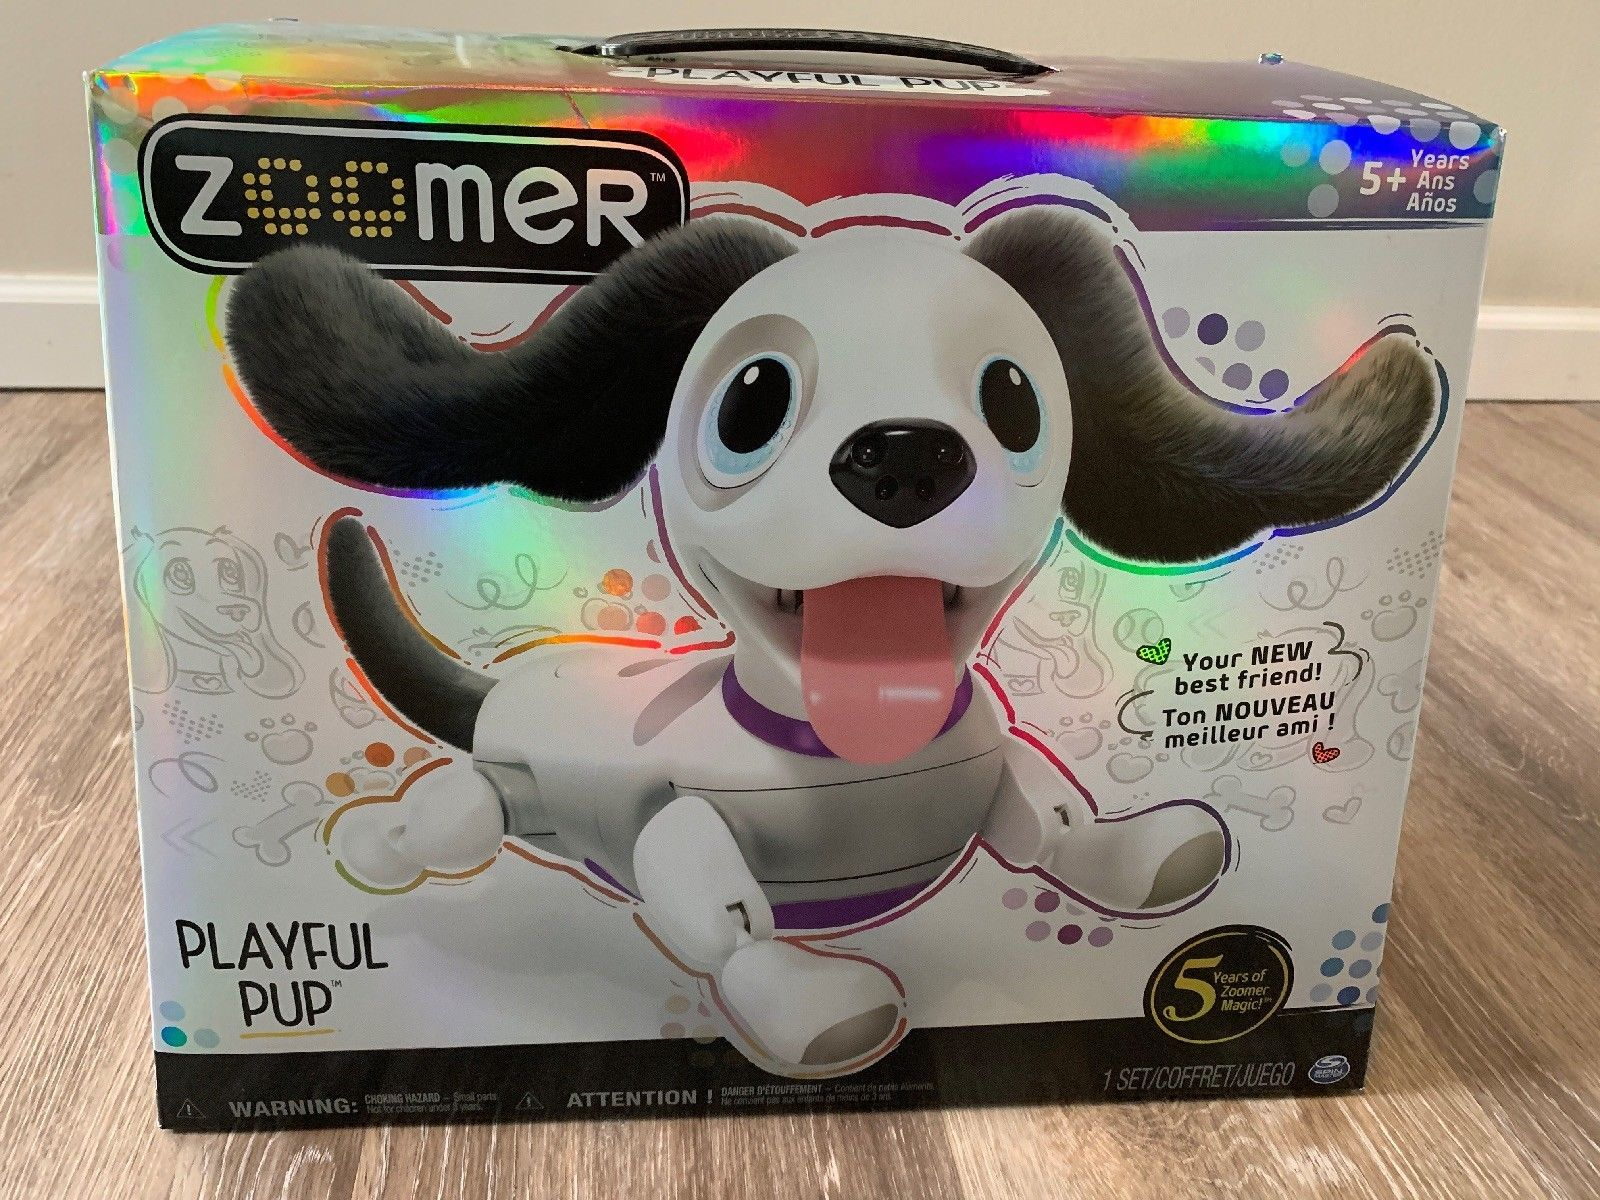 Zoomer Playful Pup Realistic Interactive Robotic Dog with Voice Recognition